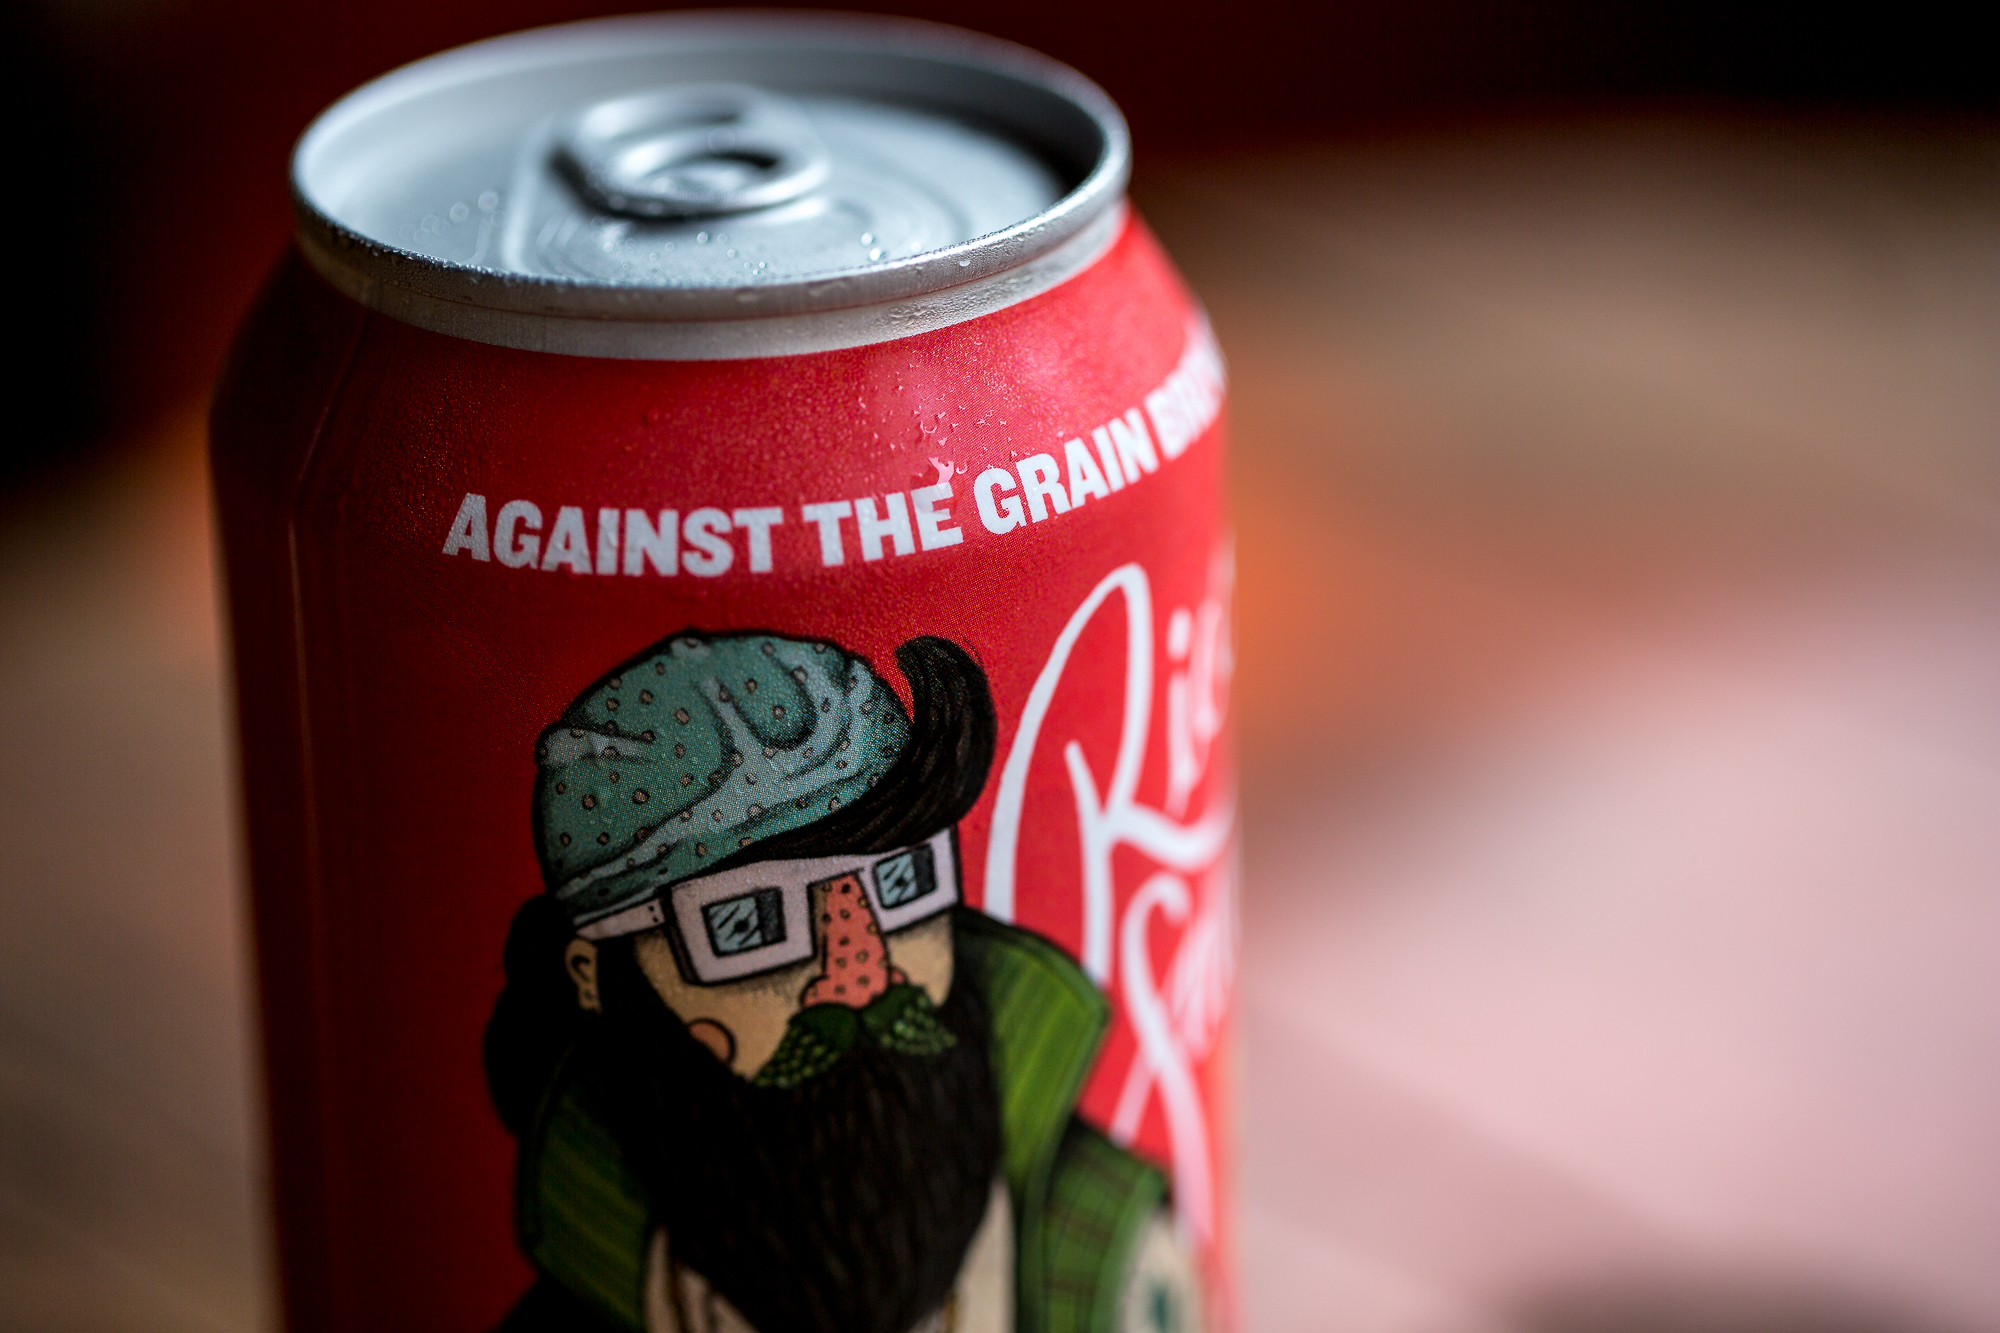 Against The Grain Brewery - Rico Sauvin